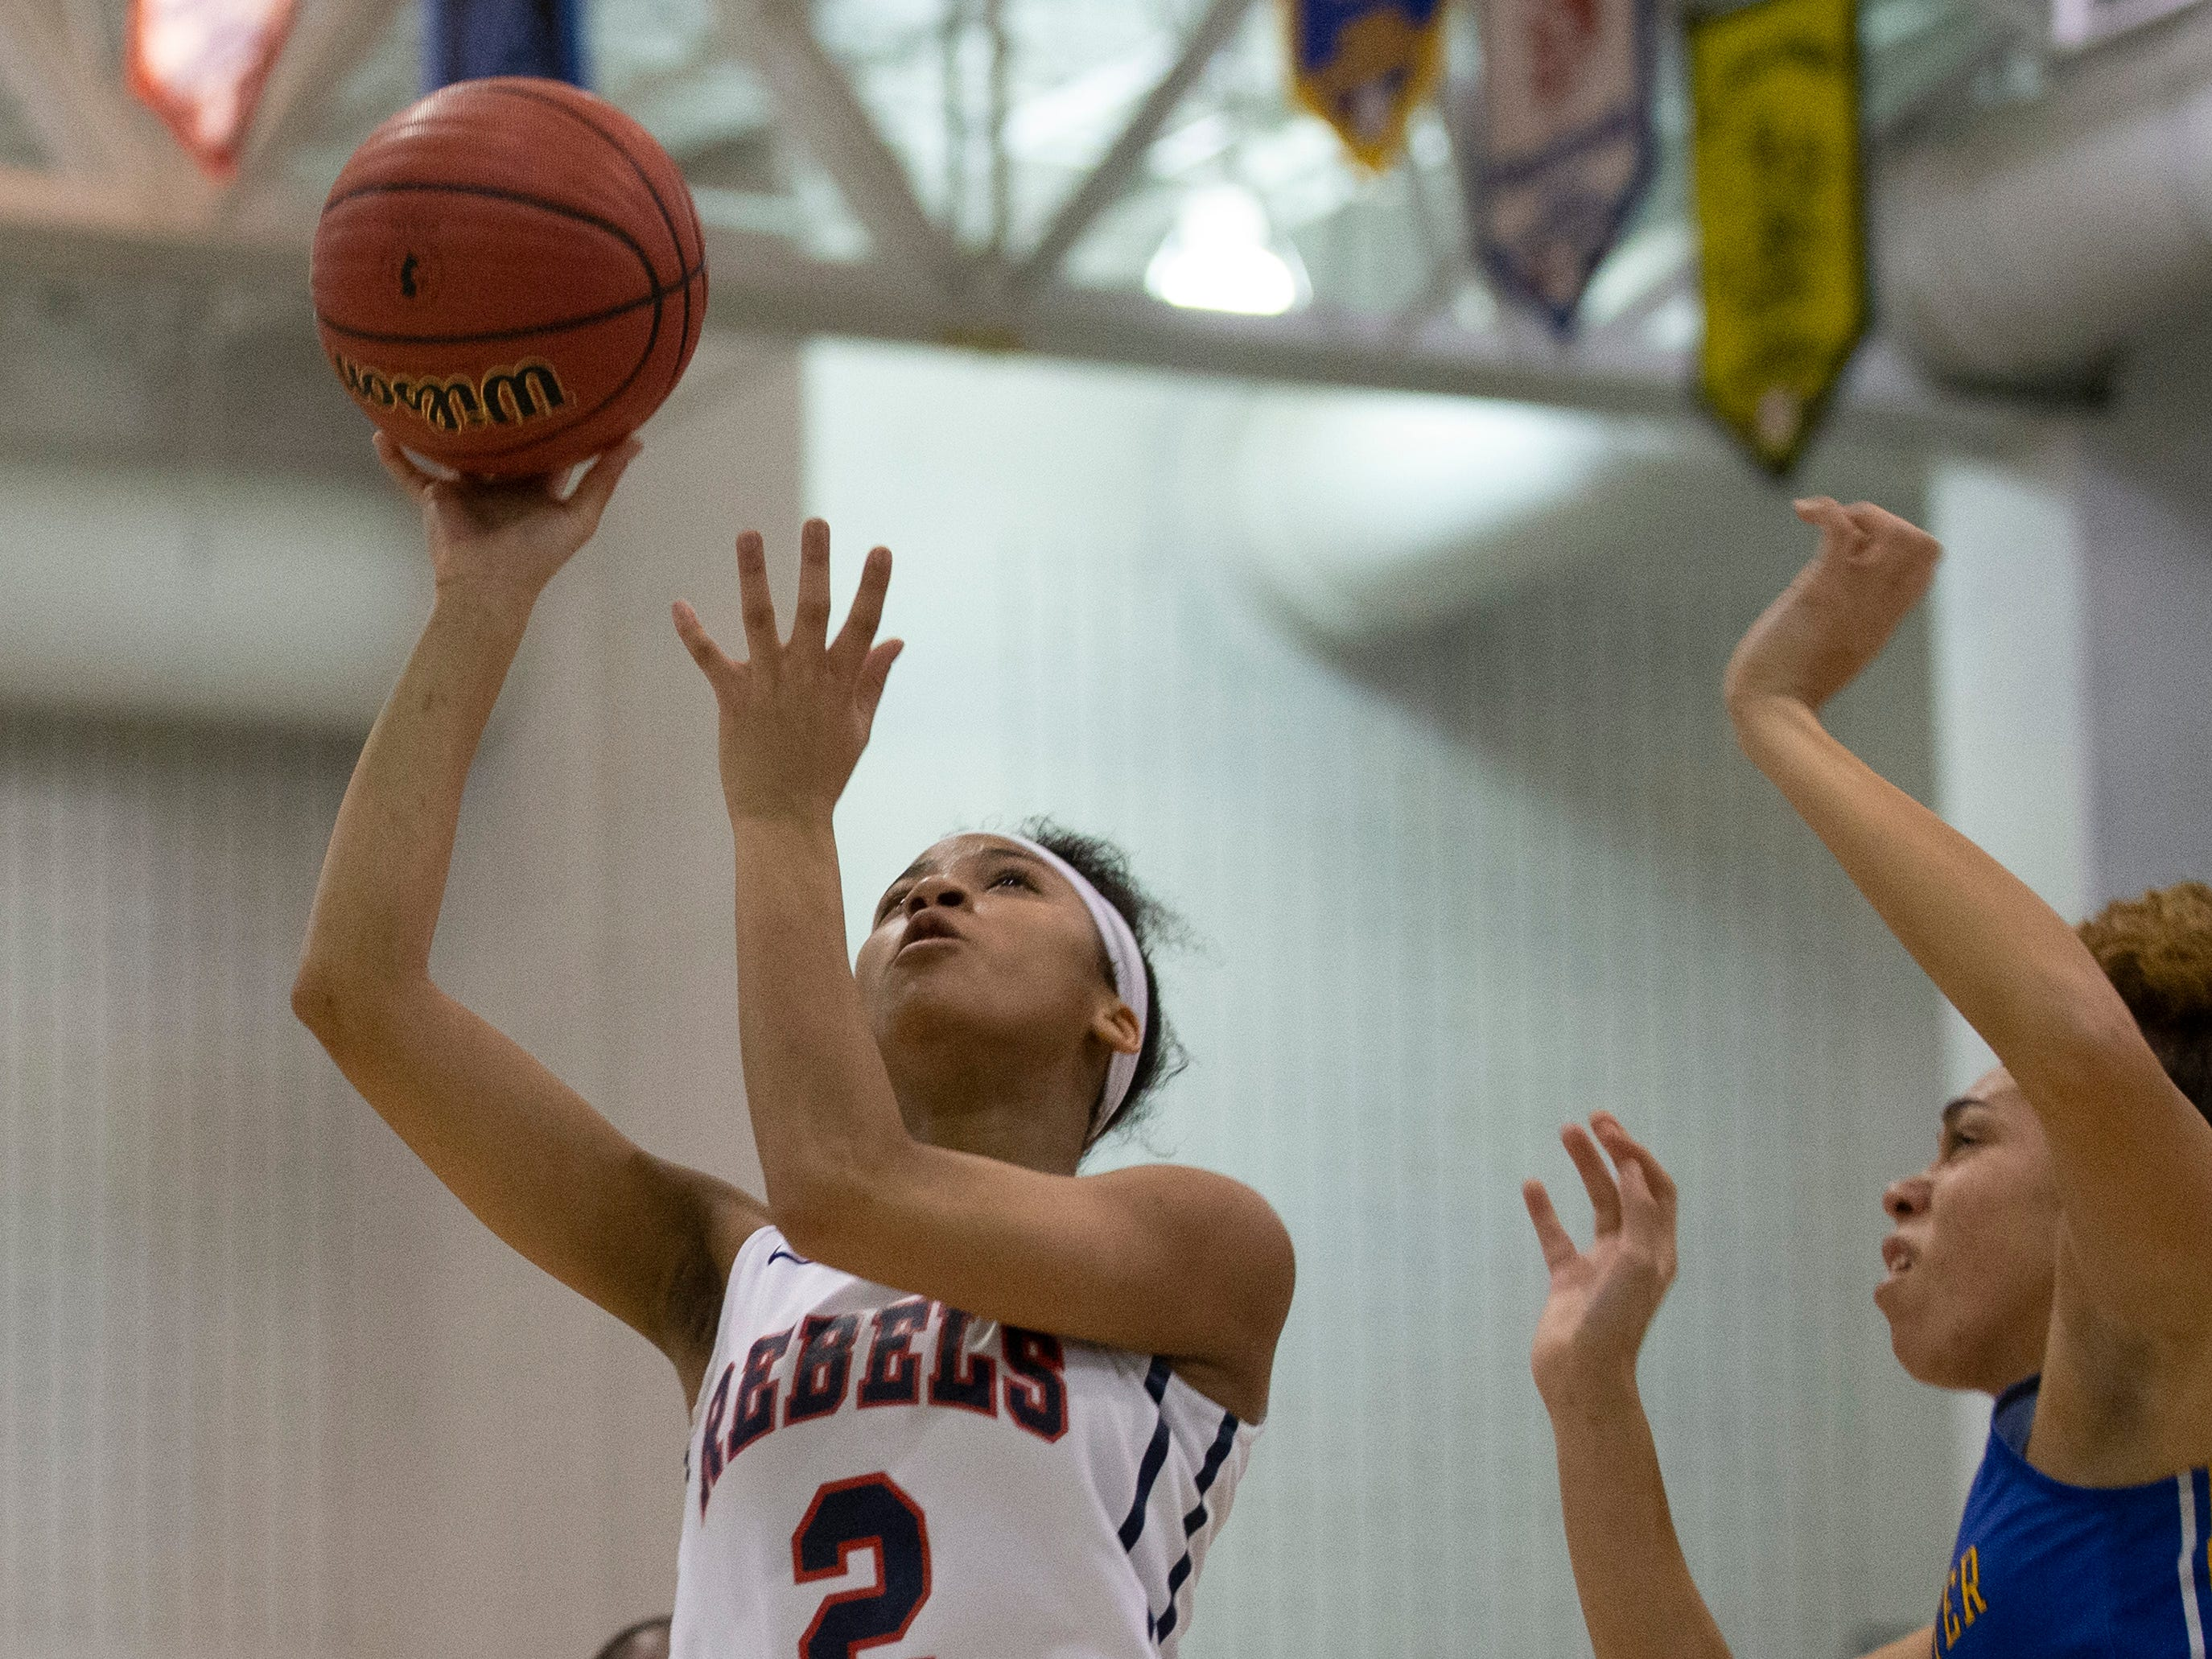 Saddle River Day's Saniah Caldwell shoots. Manchester Girls Basketball vs Saddle River Day in NJSIAA Tournament of Champions Semifinal in Toms River on March 14, 2019.